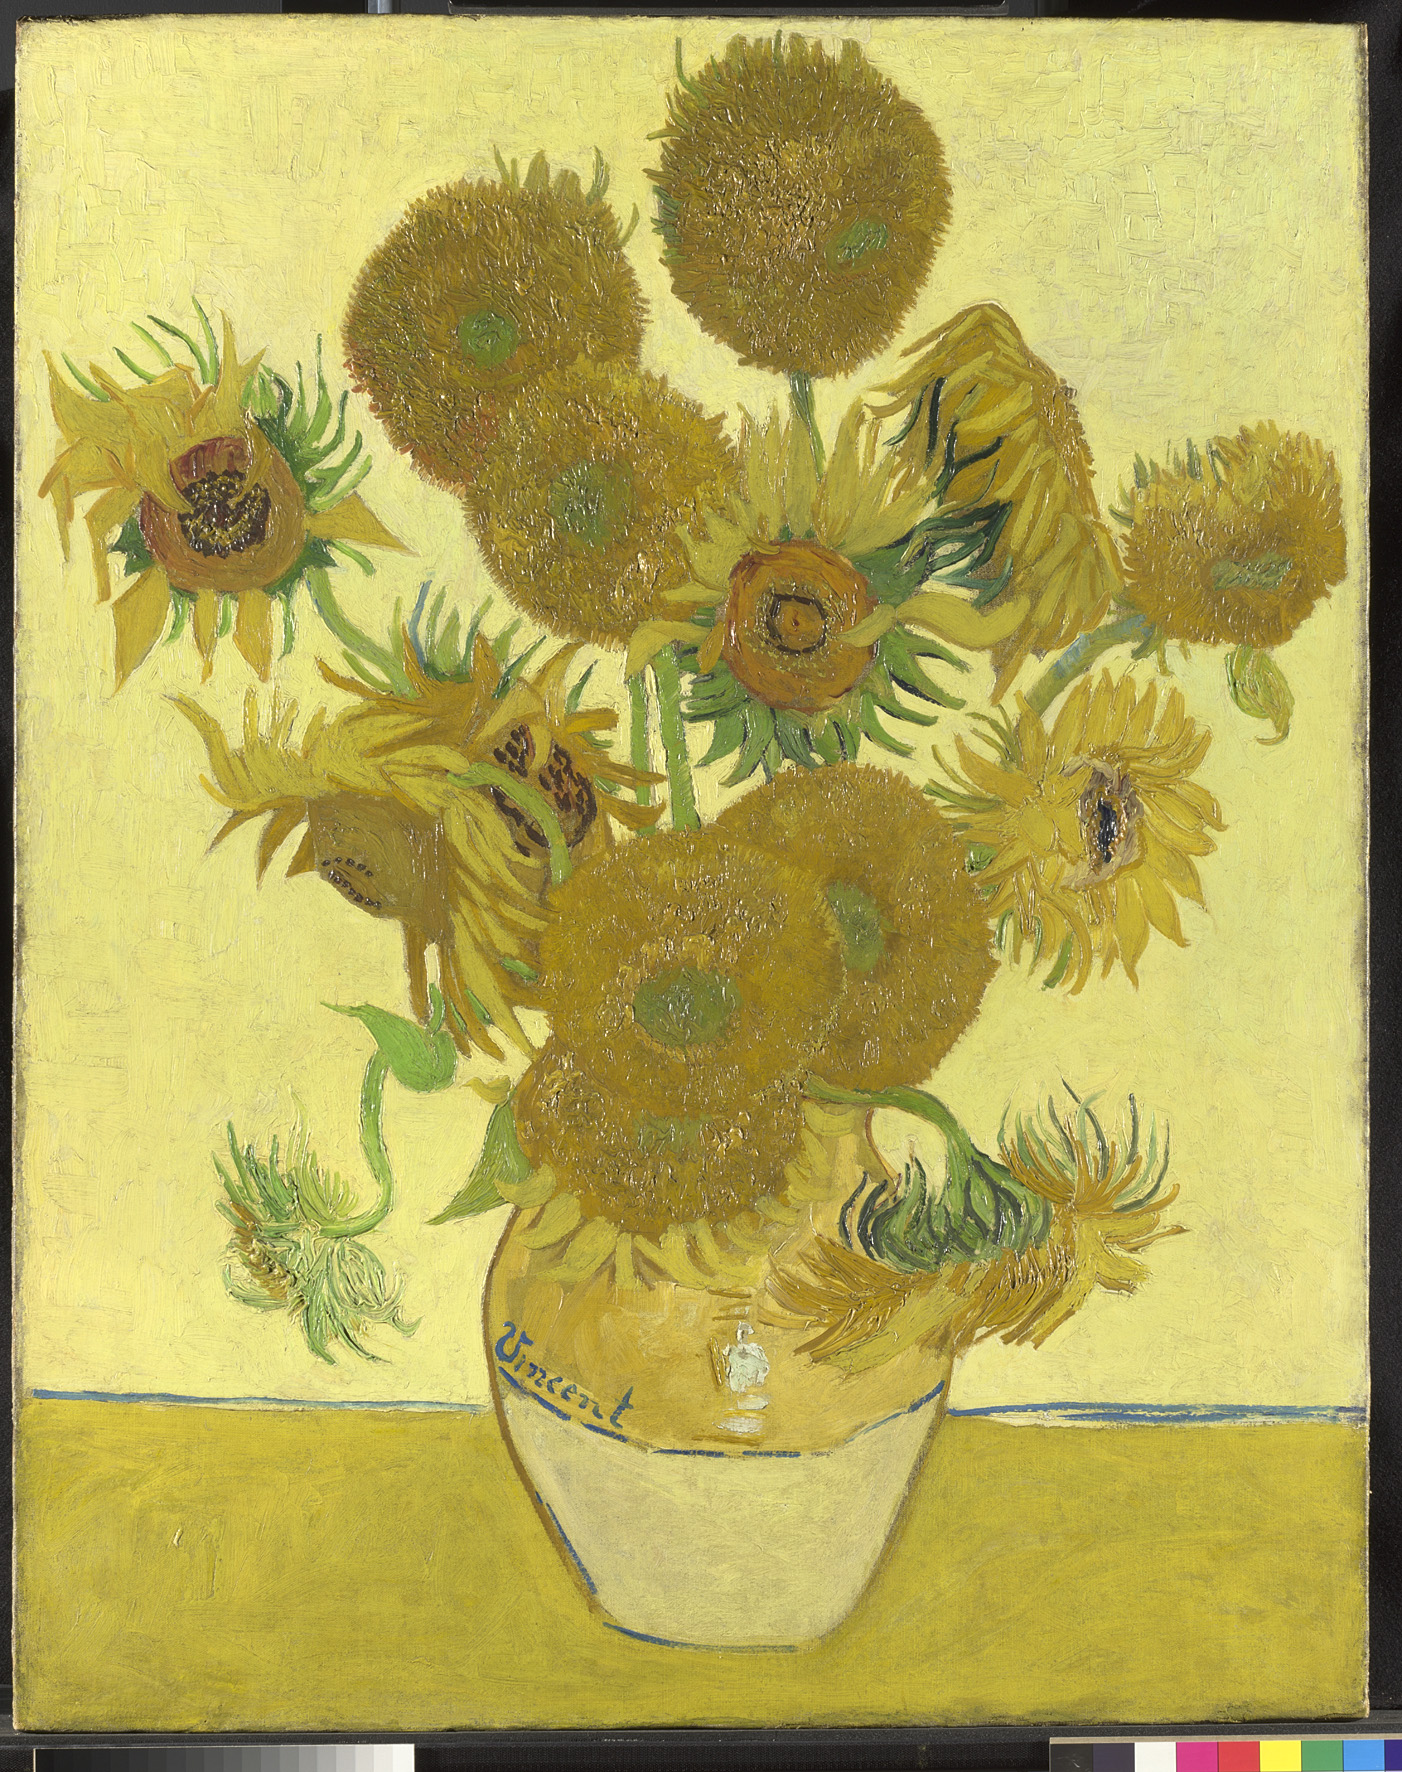 Cuadro De Los Girasoles Van Gogh 39s Sunflowers Funny How Flowers Do That